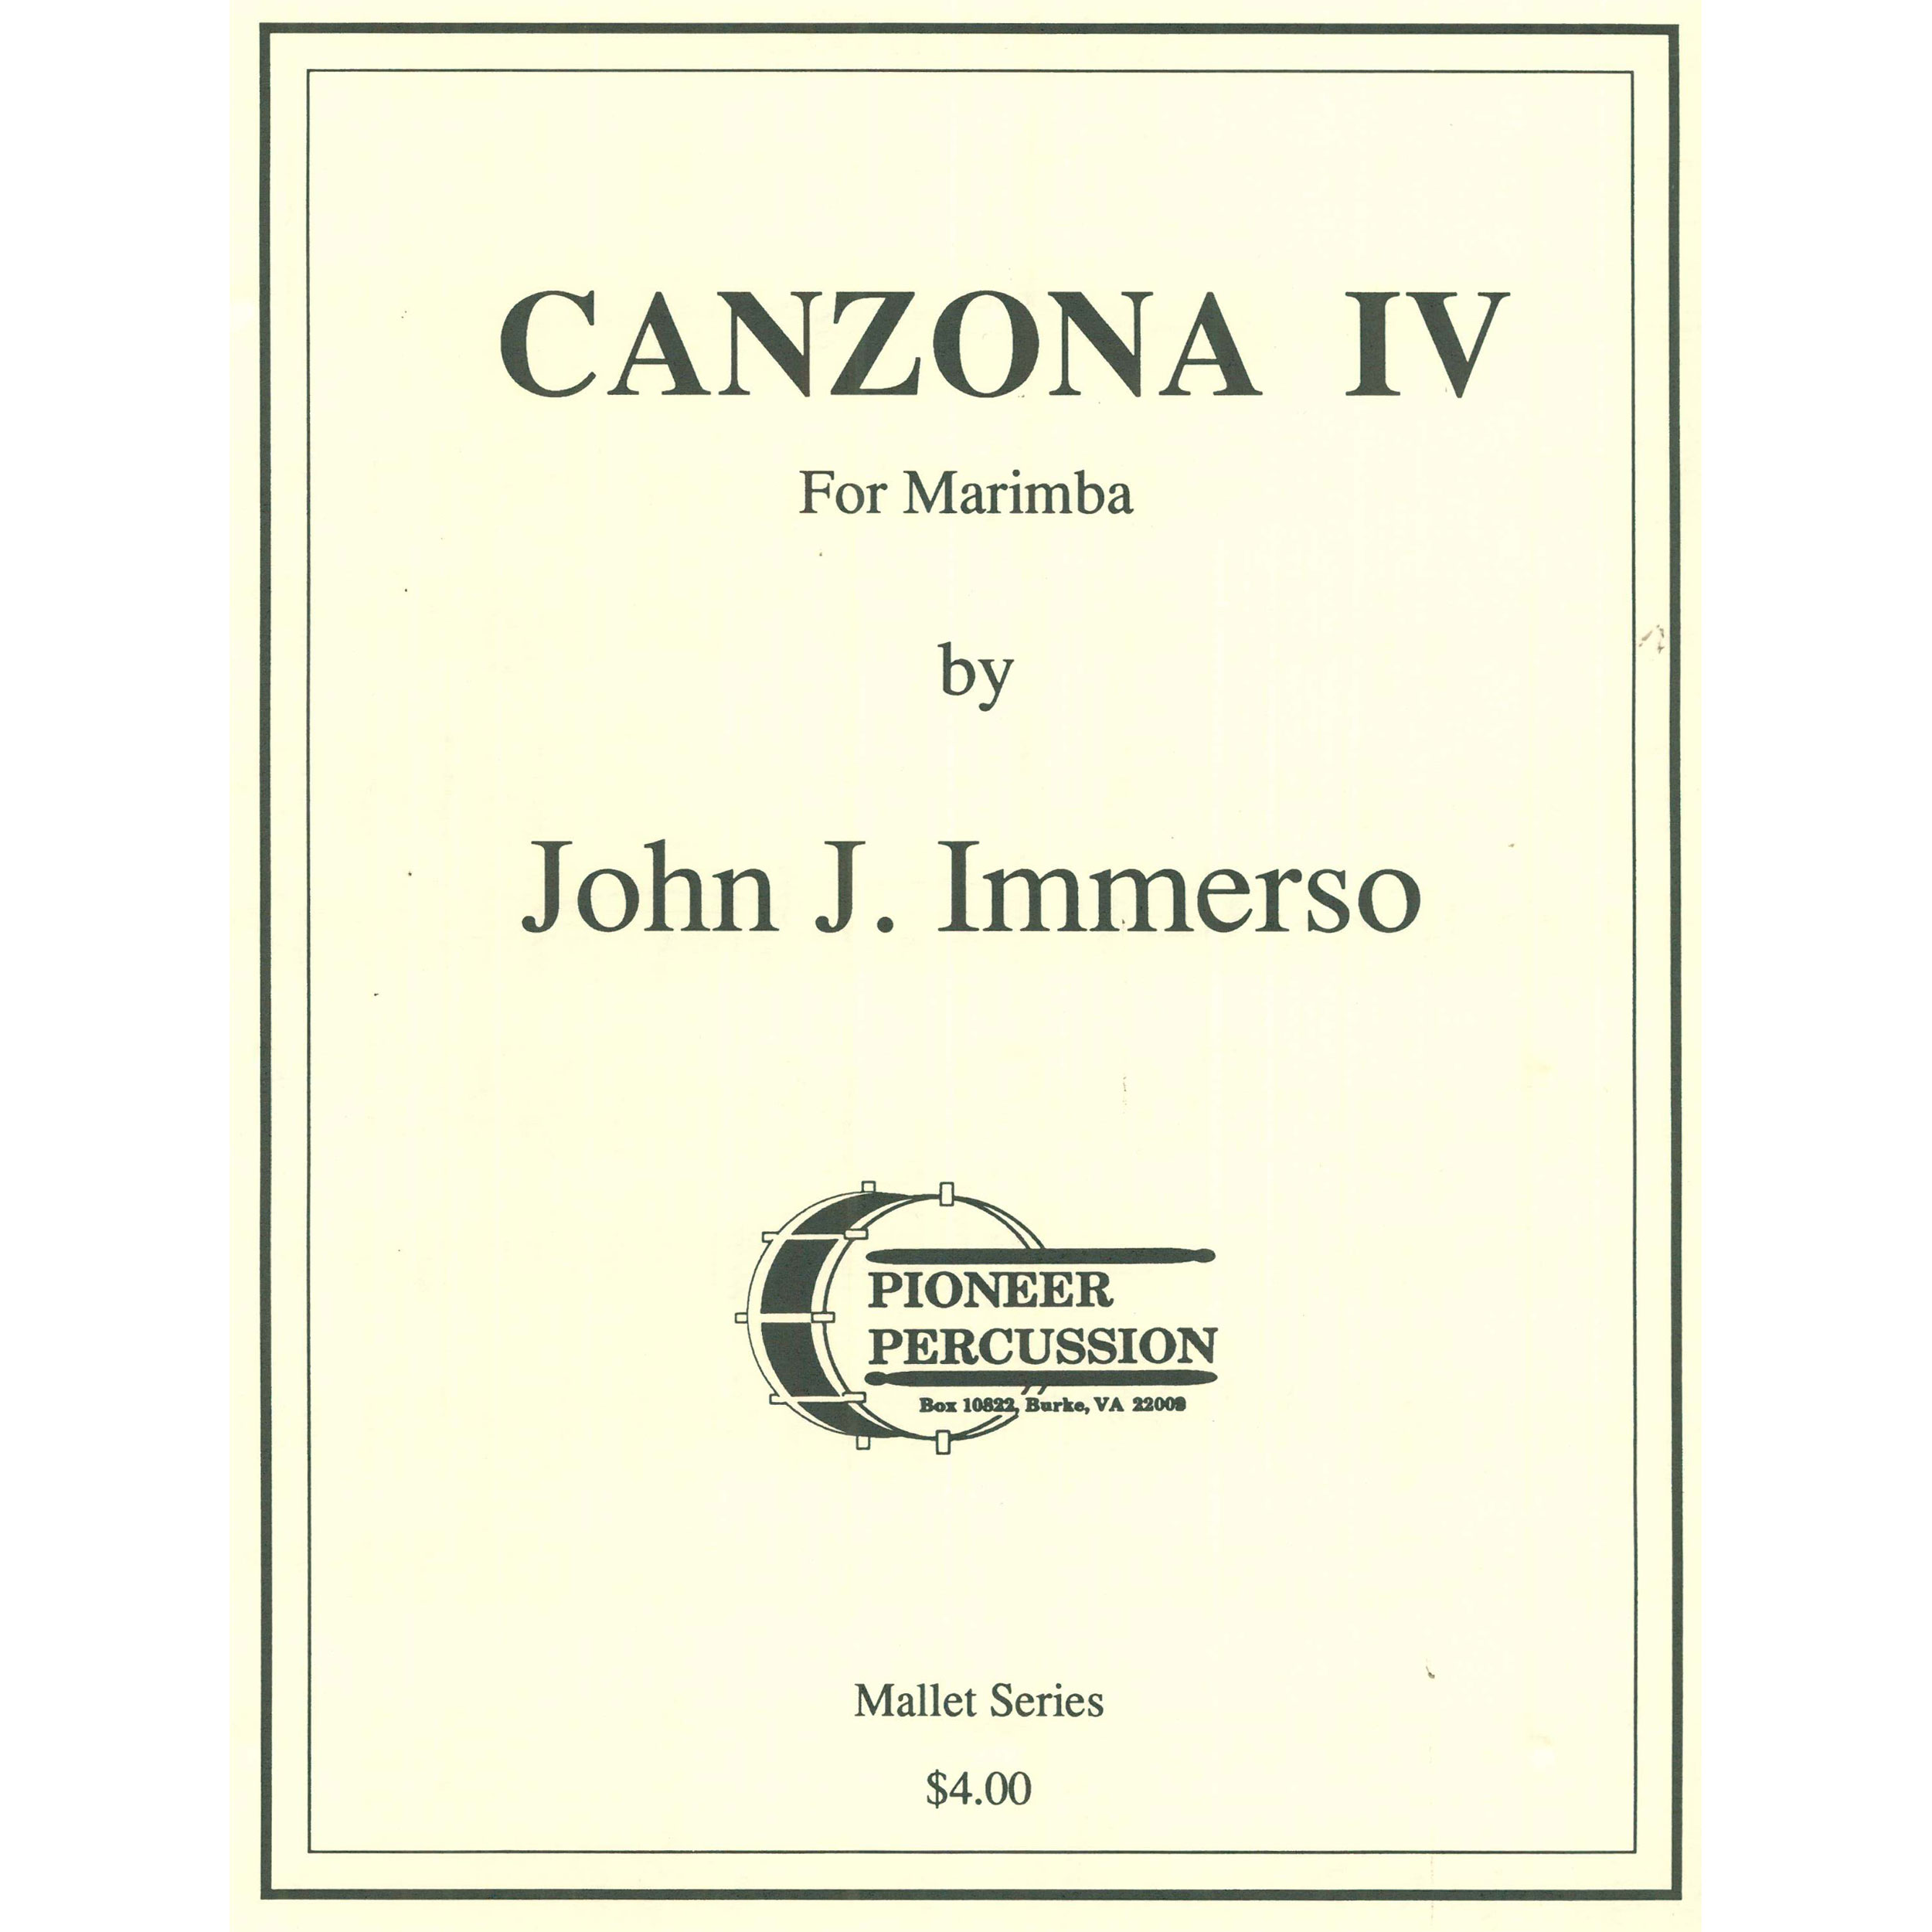 Canzona IV by John J. Immerso